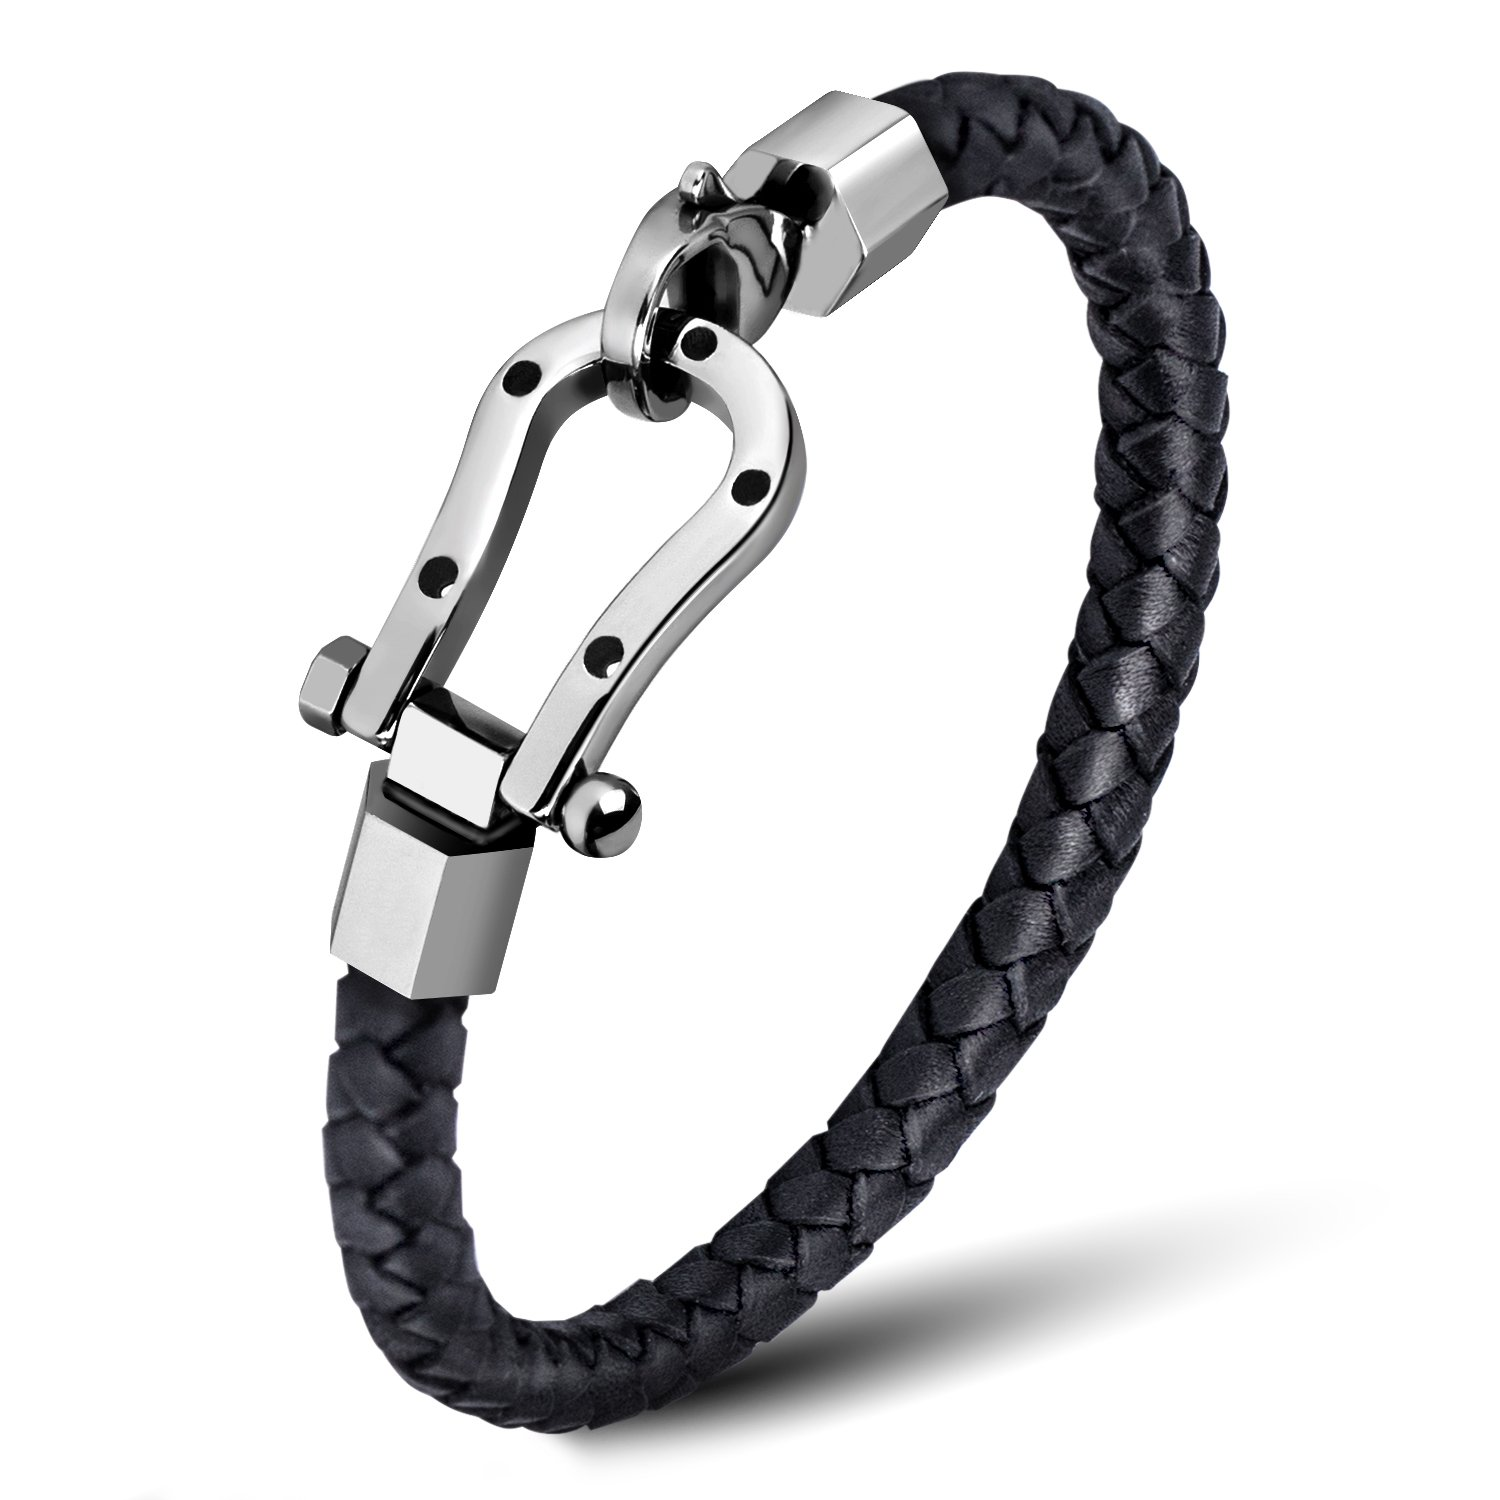 ZD-jewelry Mens  Leather Bracelet Cowhide Braided Good Luck Horseshoe Stainless Steel, Black Wrist Cuff Bangle Lobster Clip, Bracelet For Men 8.5 inch